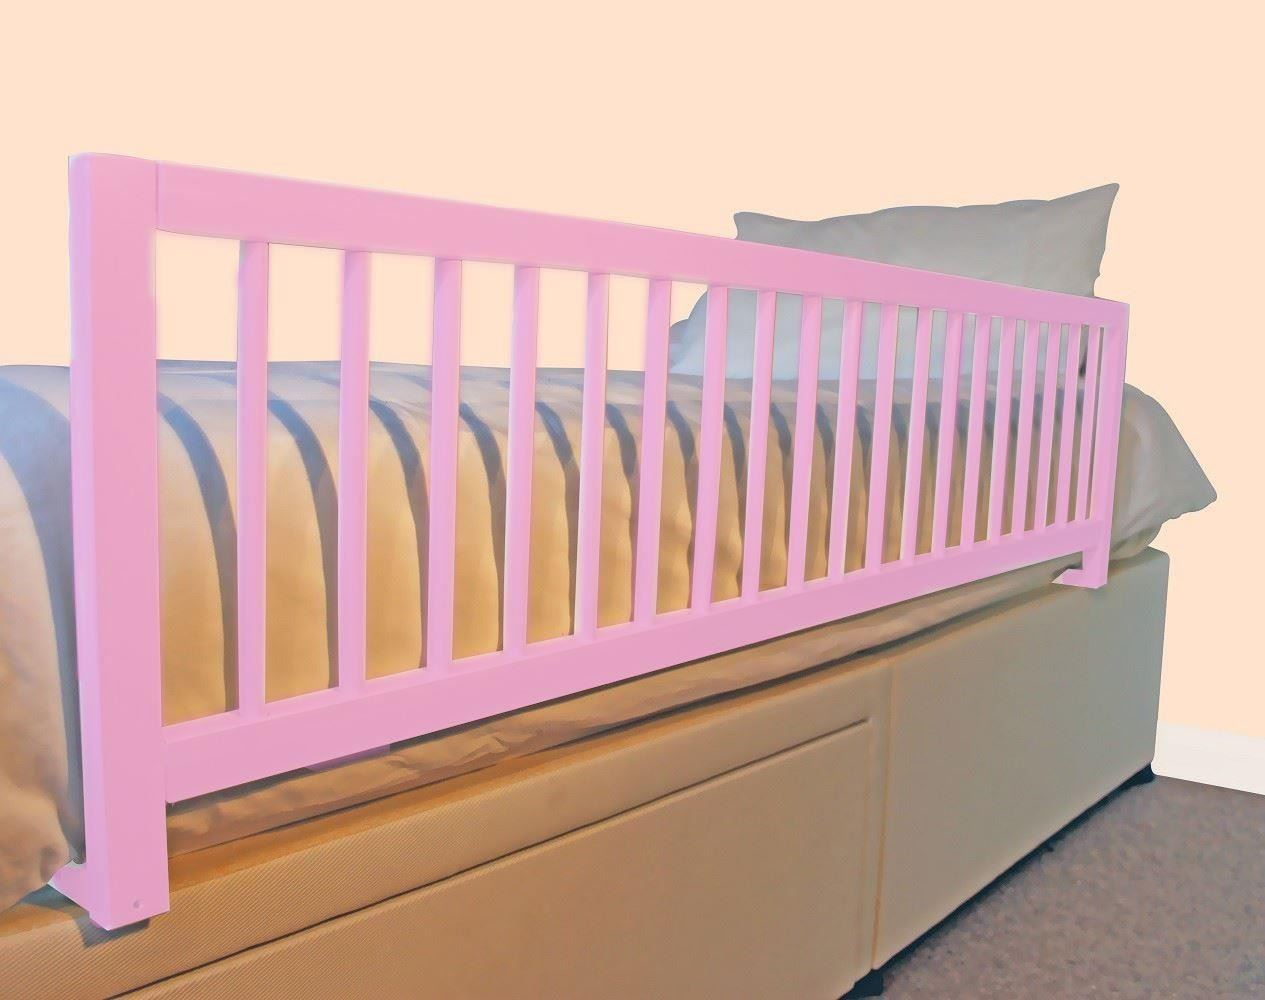 Safetots Extra Wide Long Wooden Bed Rail Girls Deluxe Toddler Bed